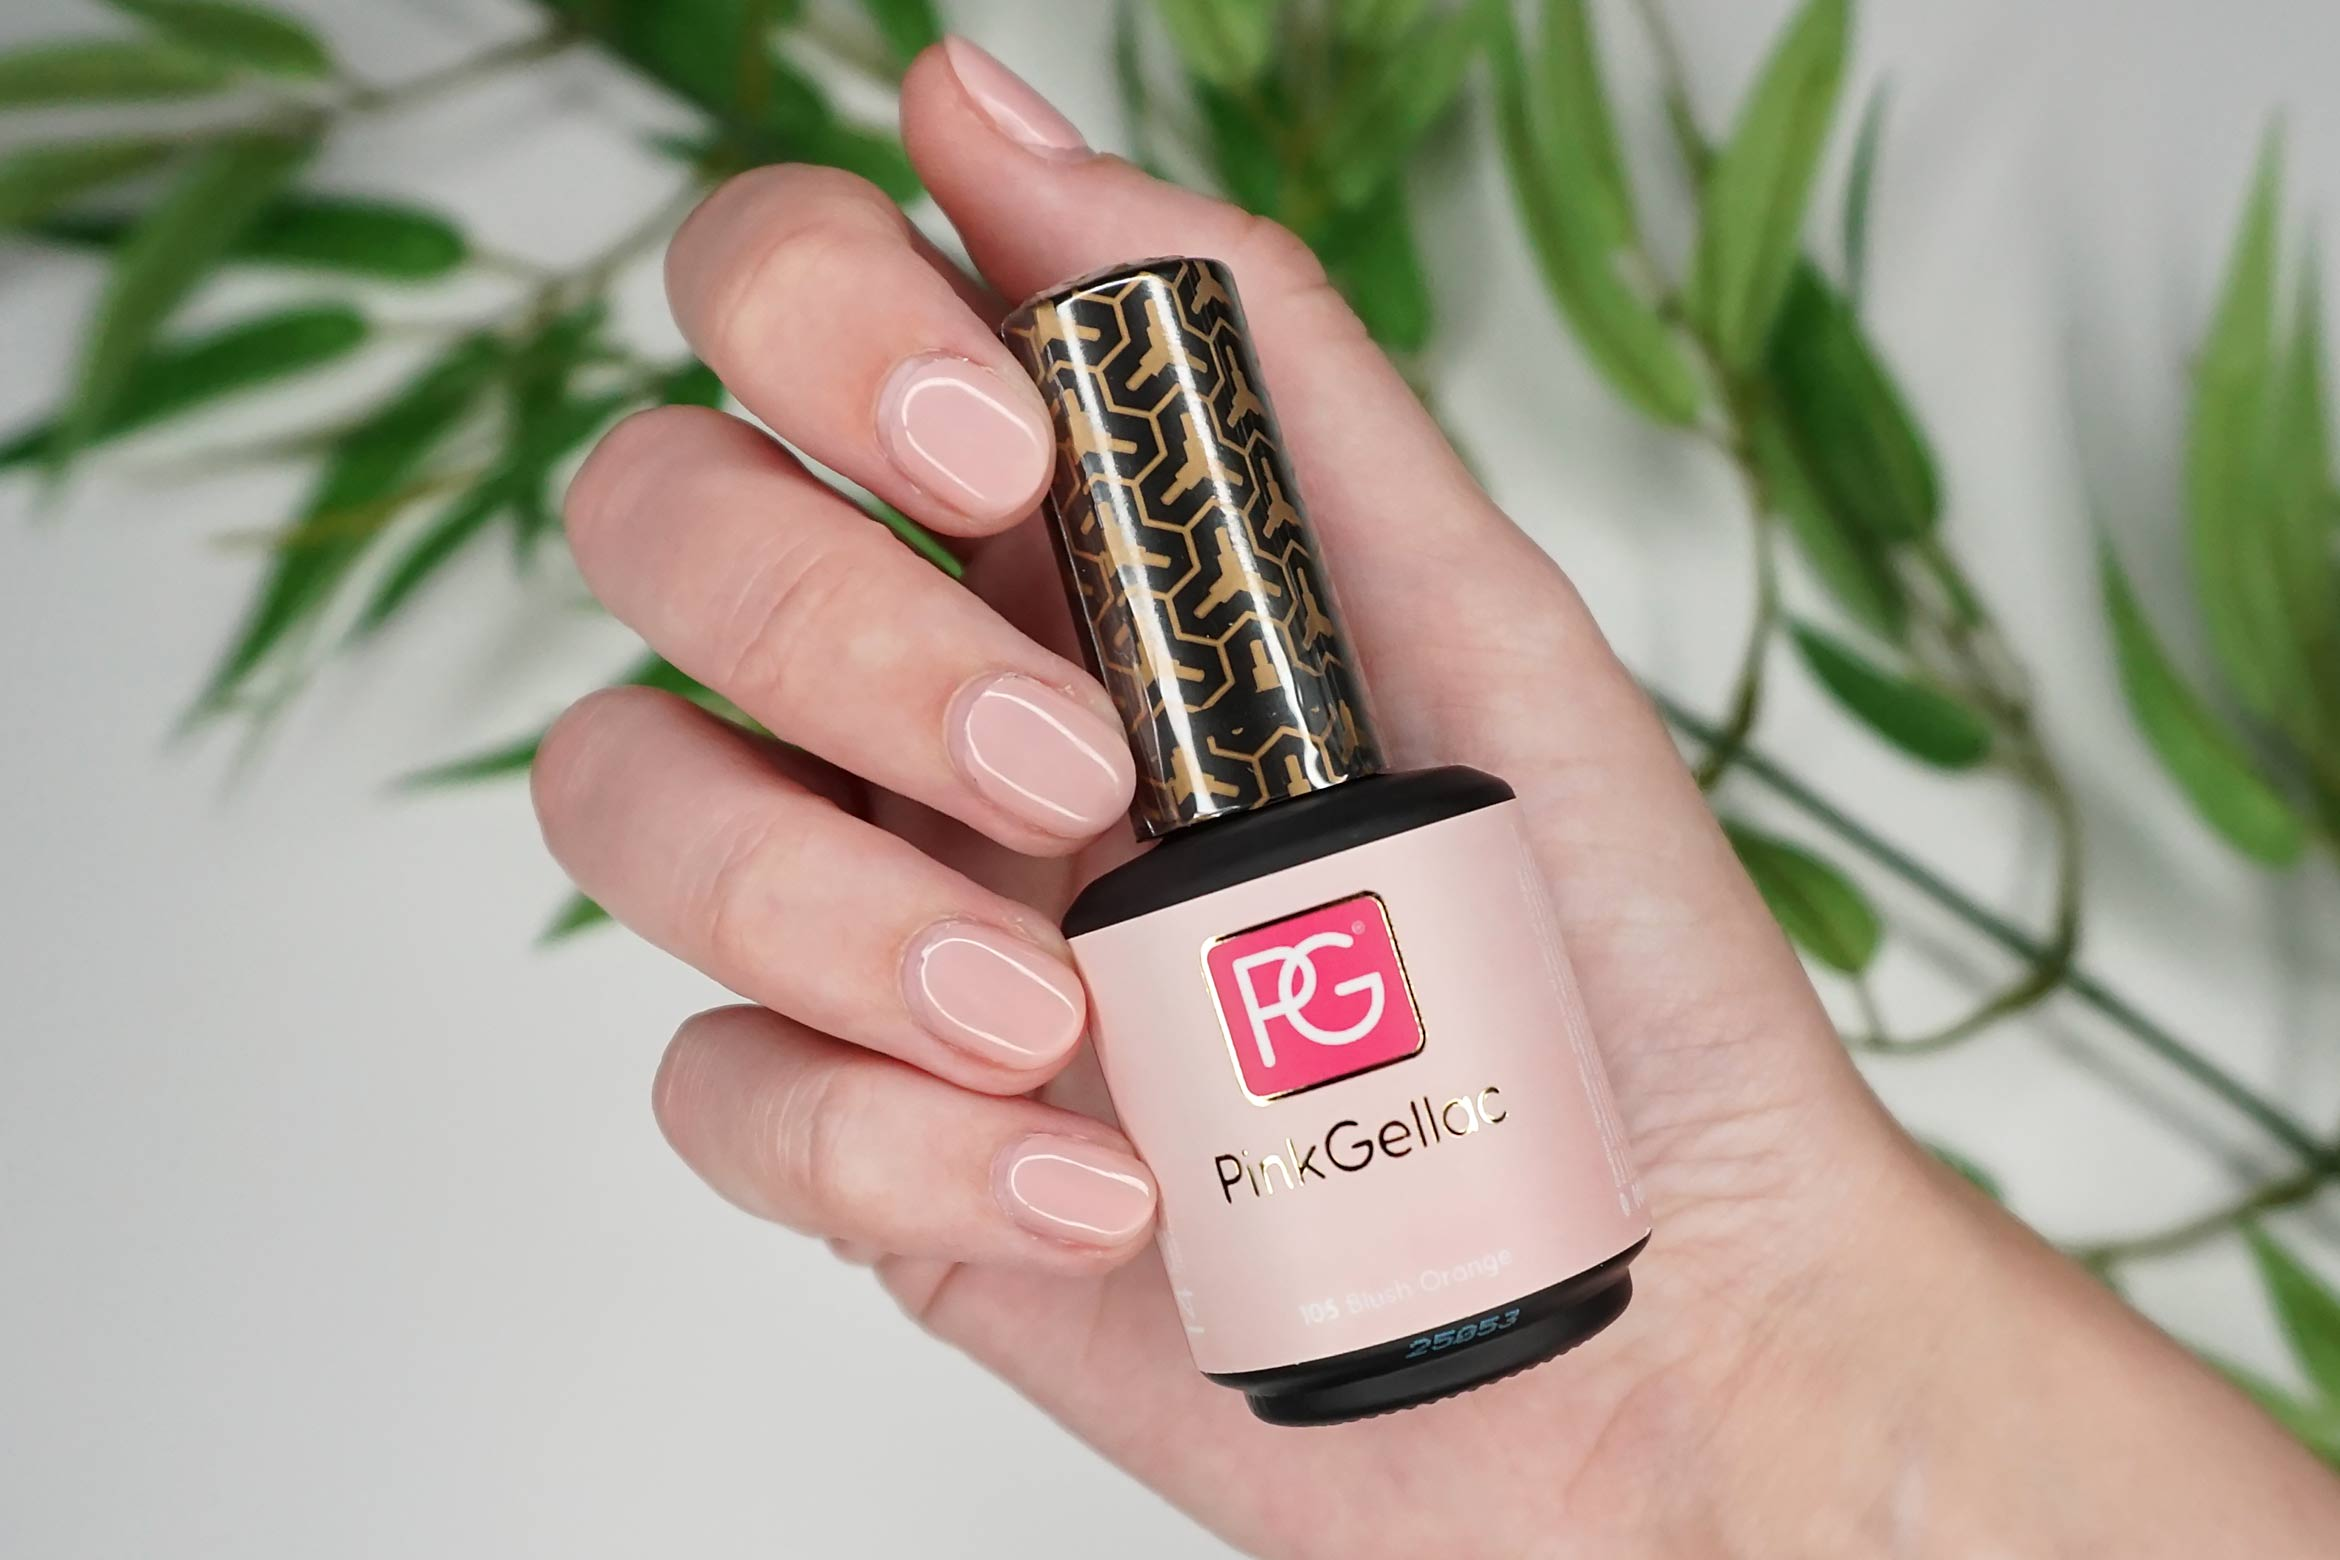 Pink-Gellac-starterset-Premium-Vogue-review-11.2